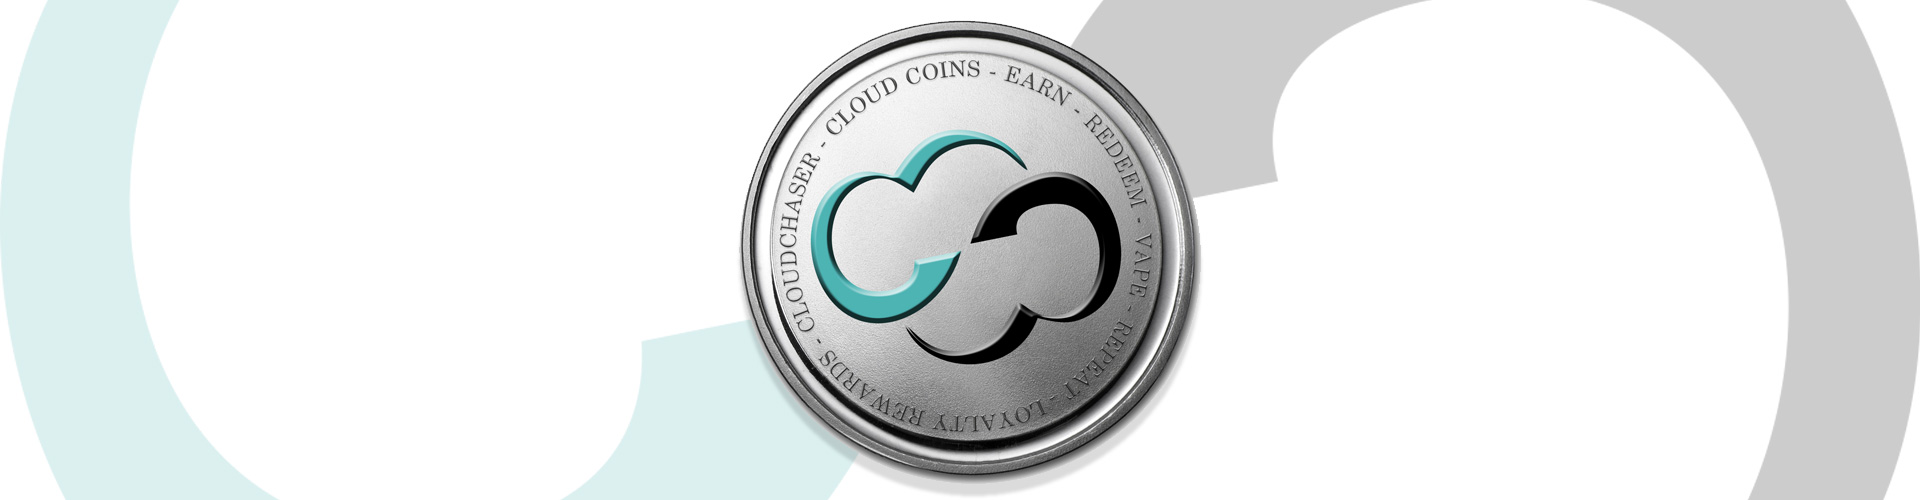 Cloudchaser Rewards